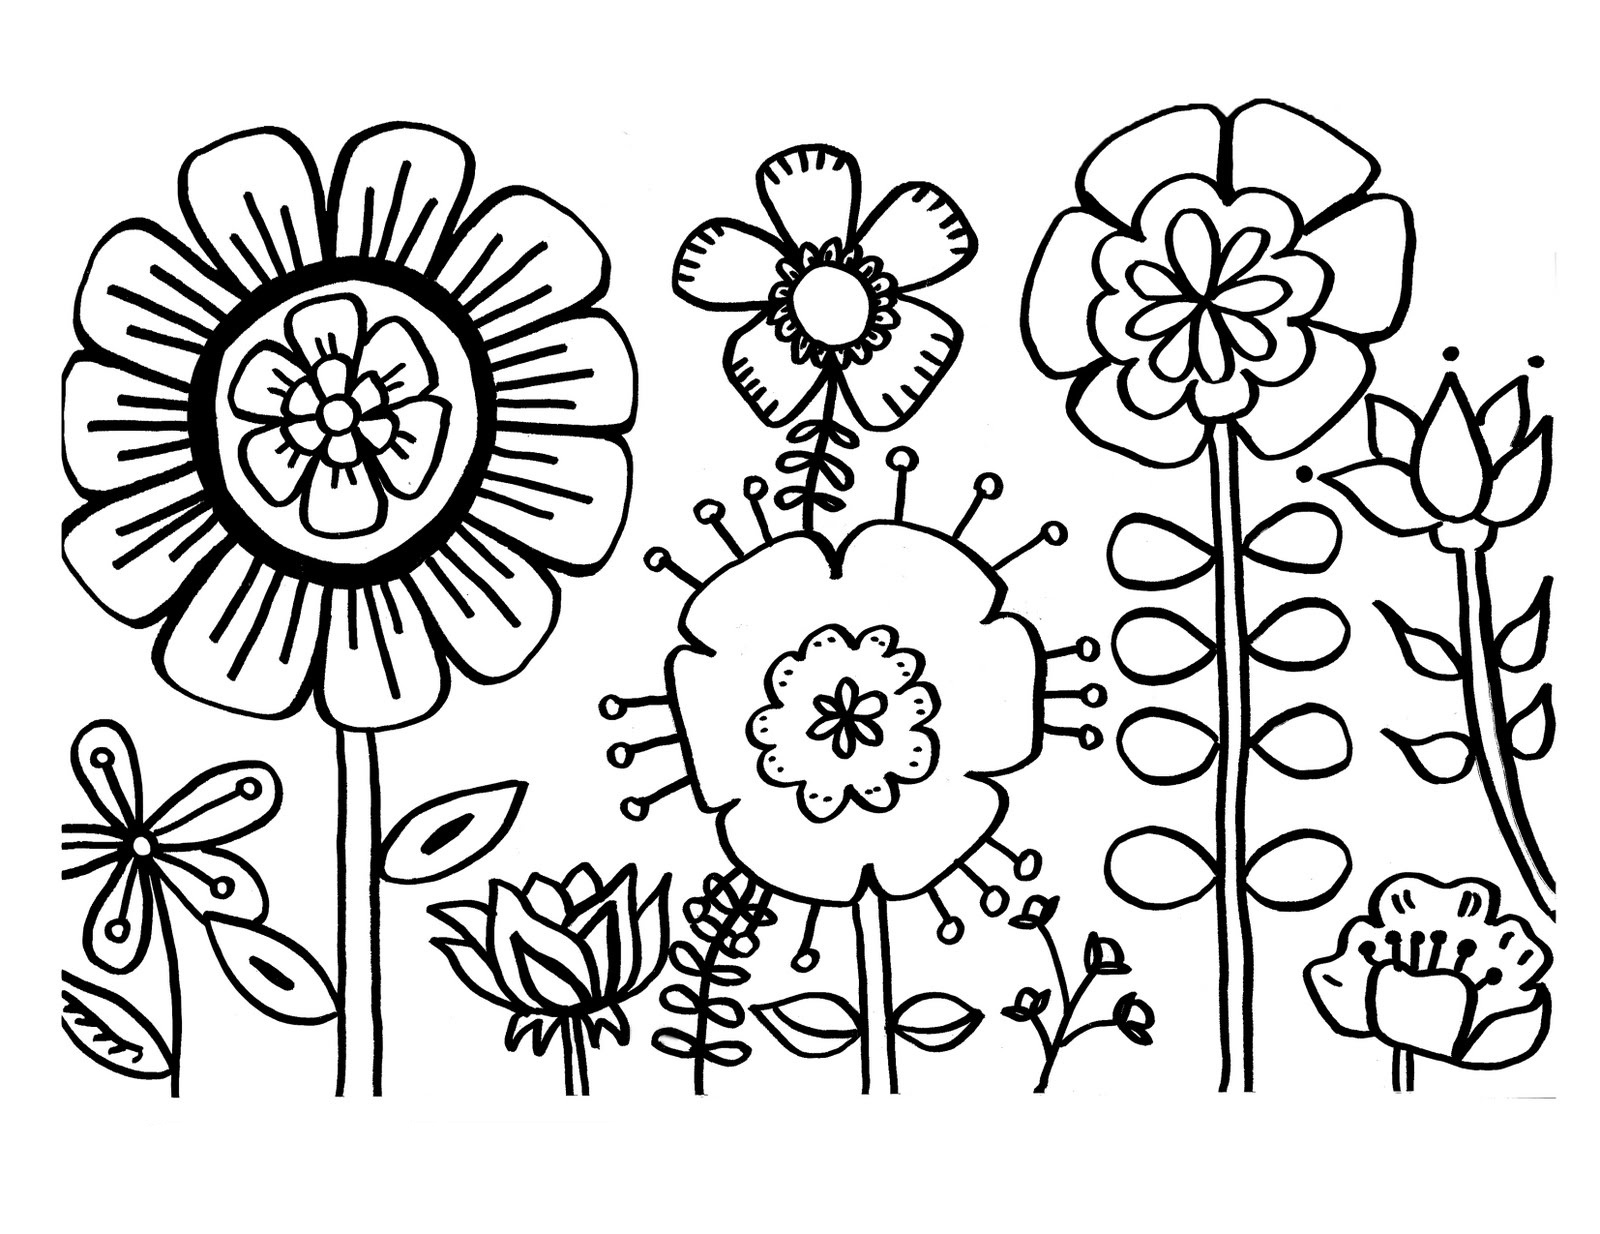 Free Printable Flower Coloring Pages For Kids - Best Coloring Pages - Free Printable Flowers